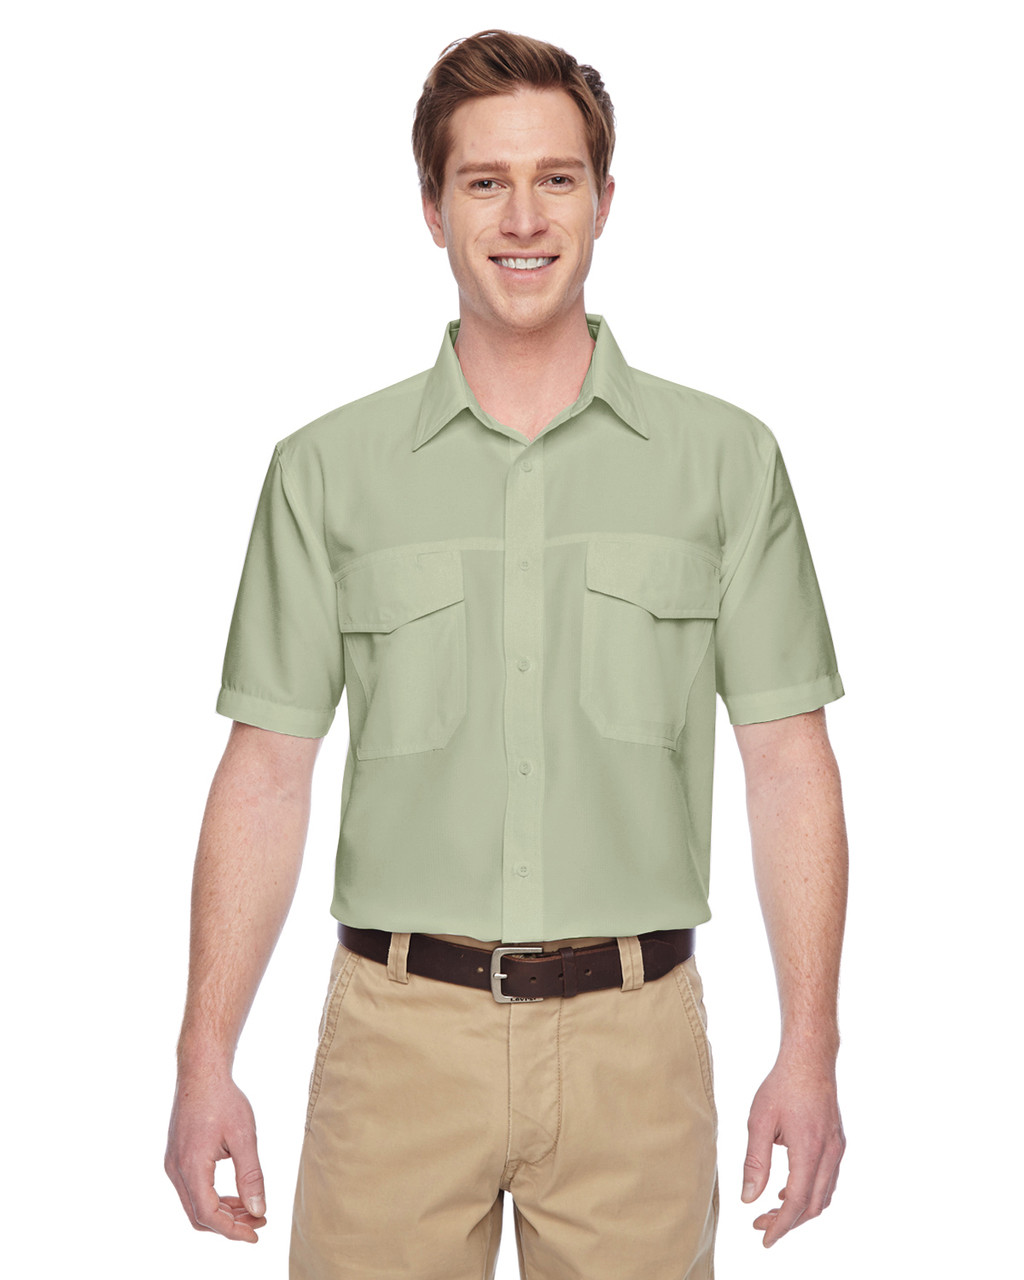 Green Mist - M580 Harriton Men's Key West Short-Sleeve Performance Staff Shirt